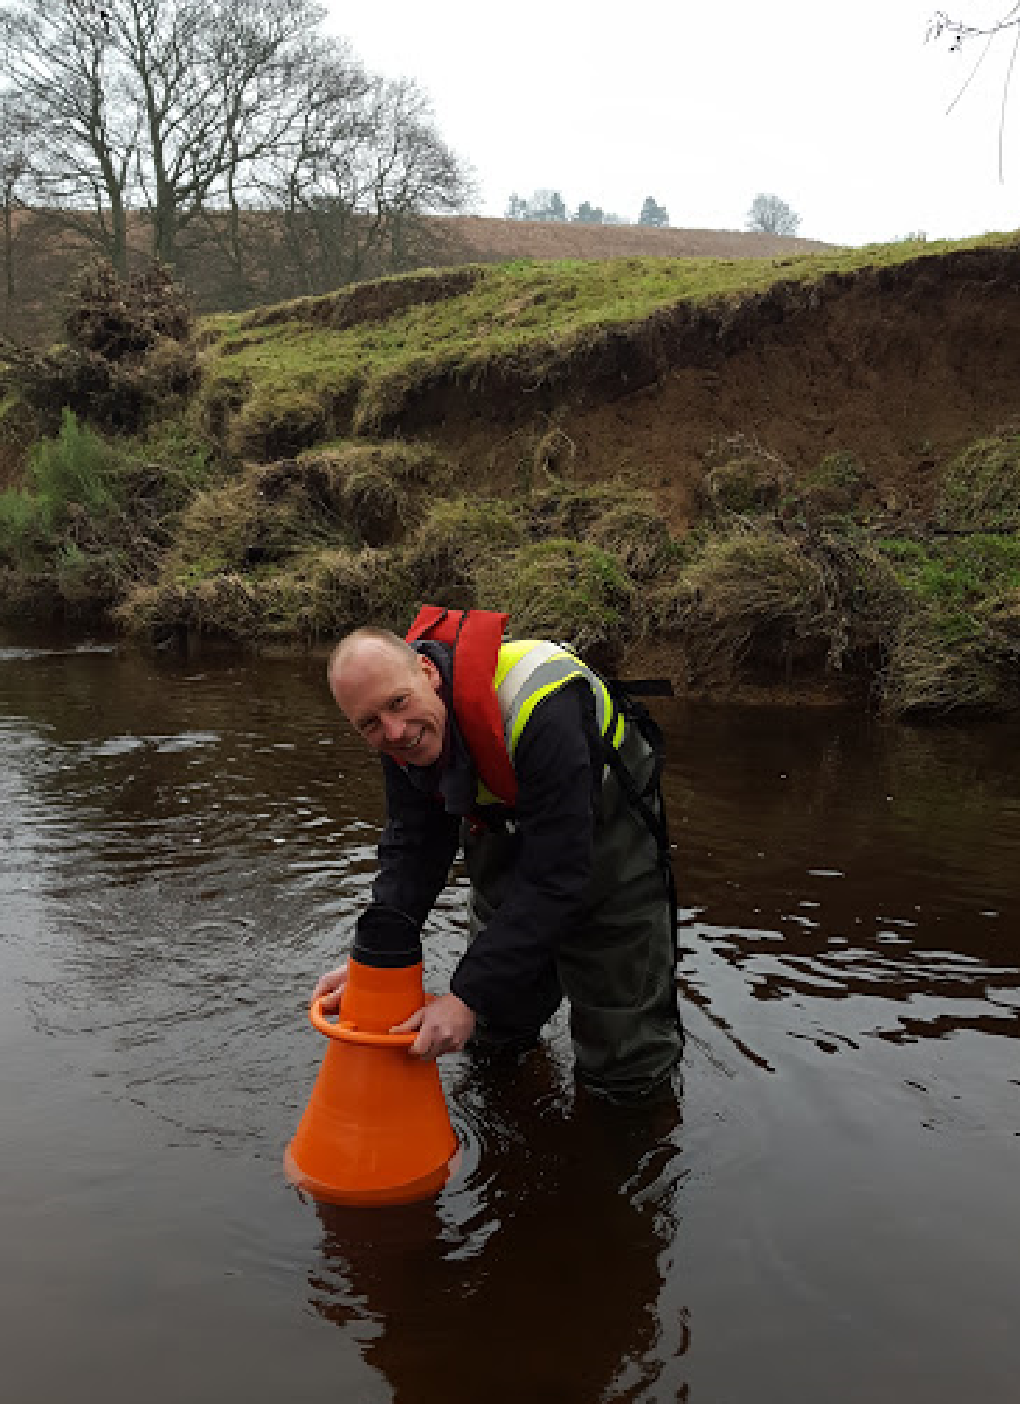 Tim surveying River Esk. Credit: Gemma Smith, Natural England